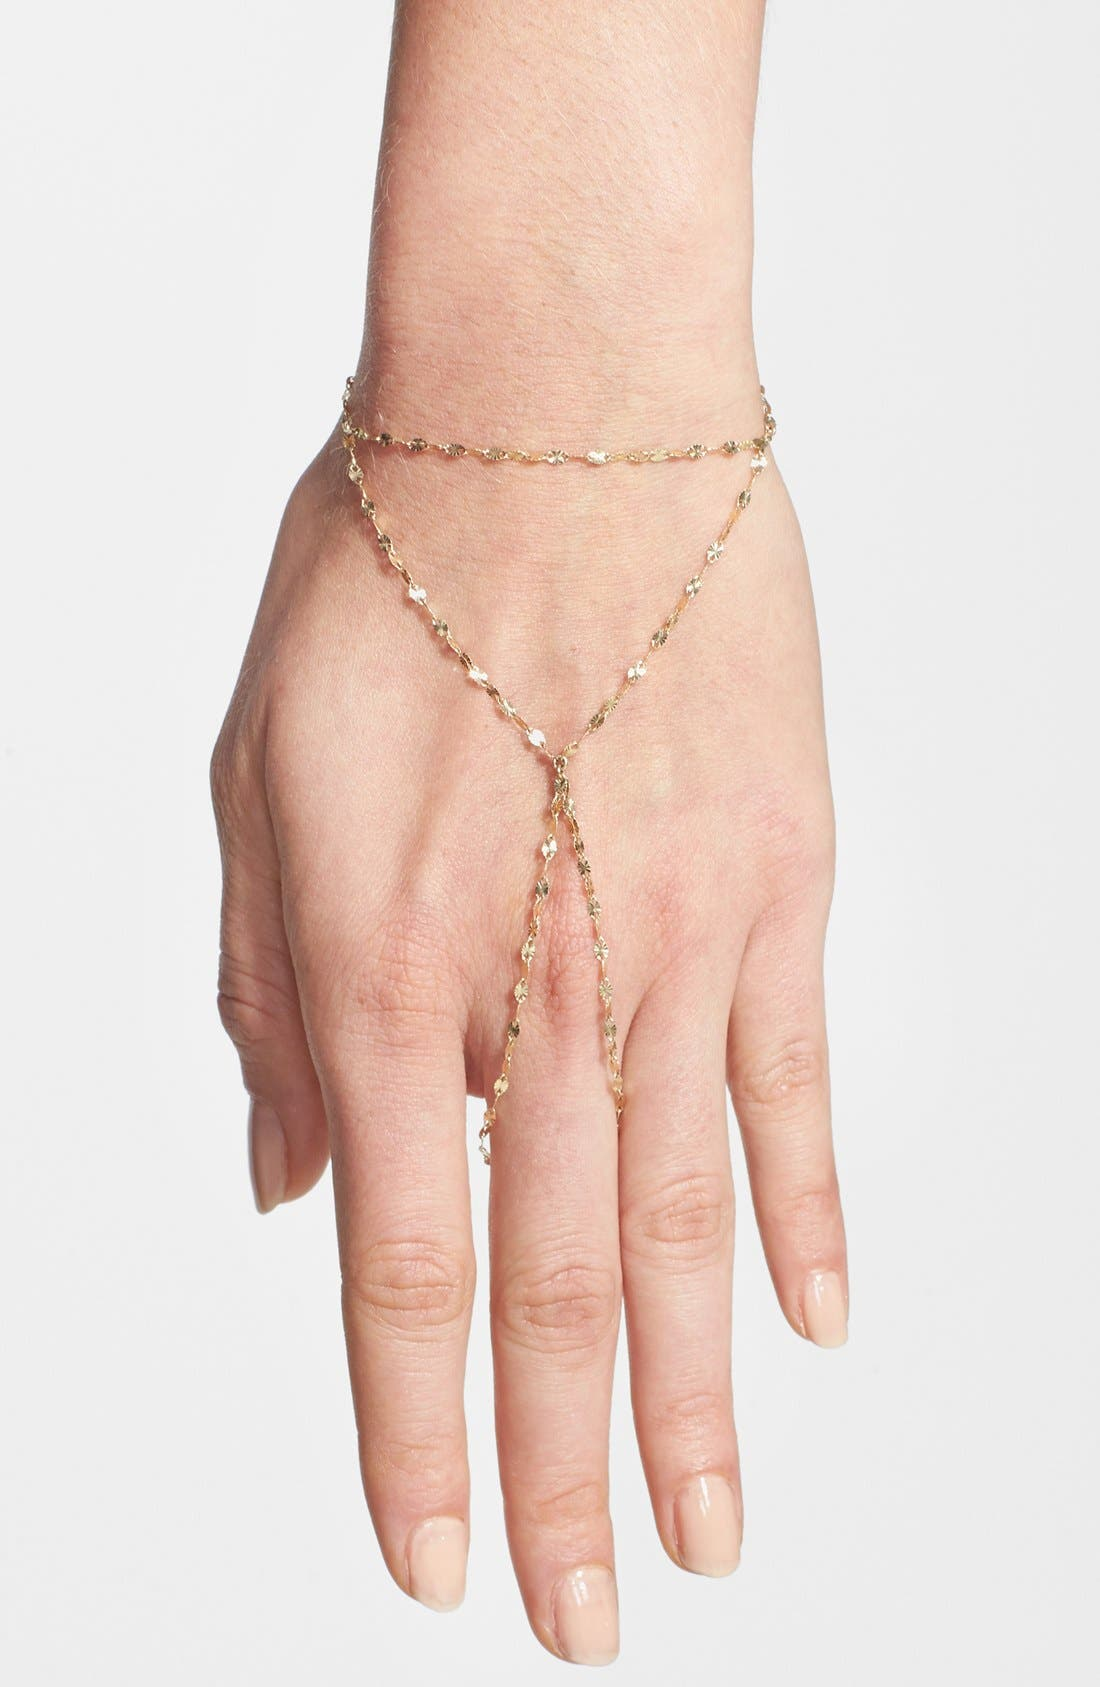 'Mystiq' Hand Chain,                             Main thumbnail 1, color,                             710